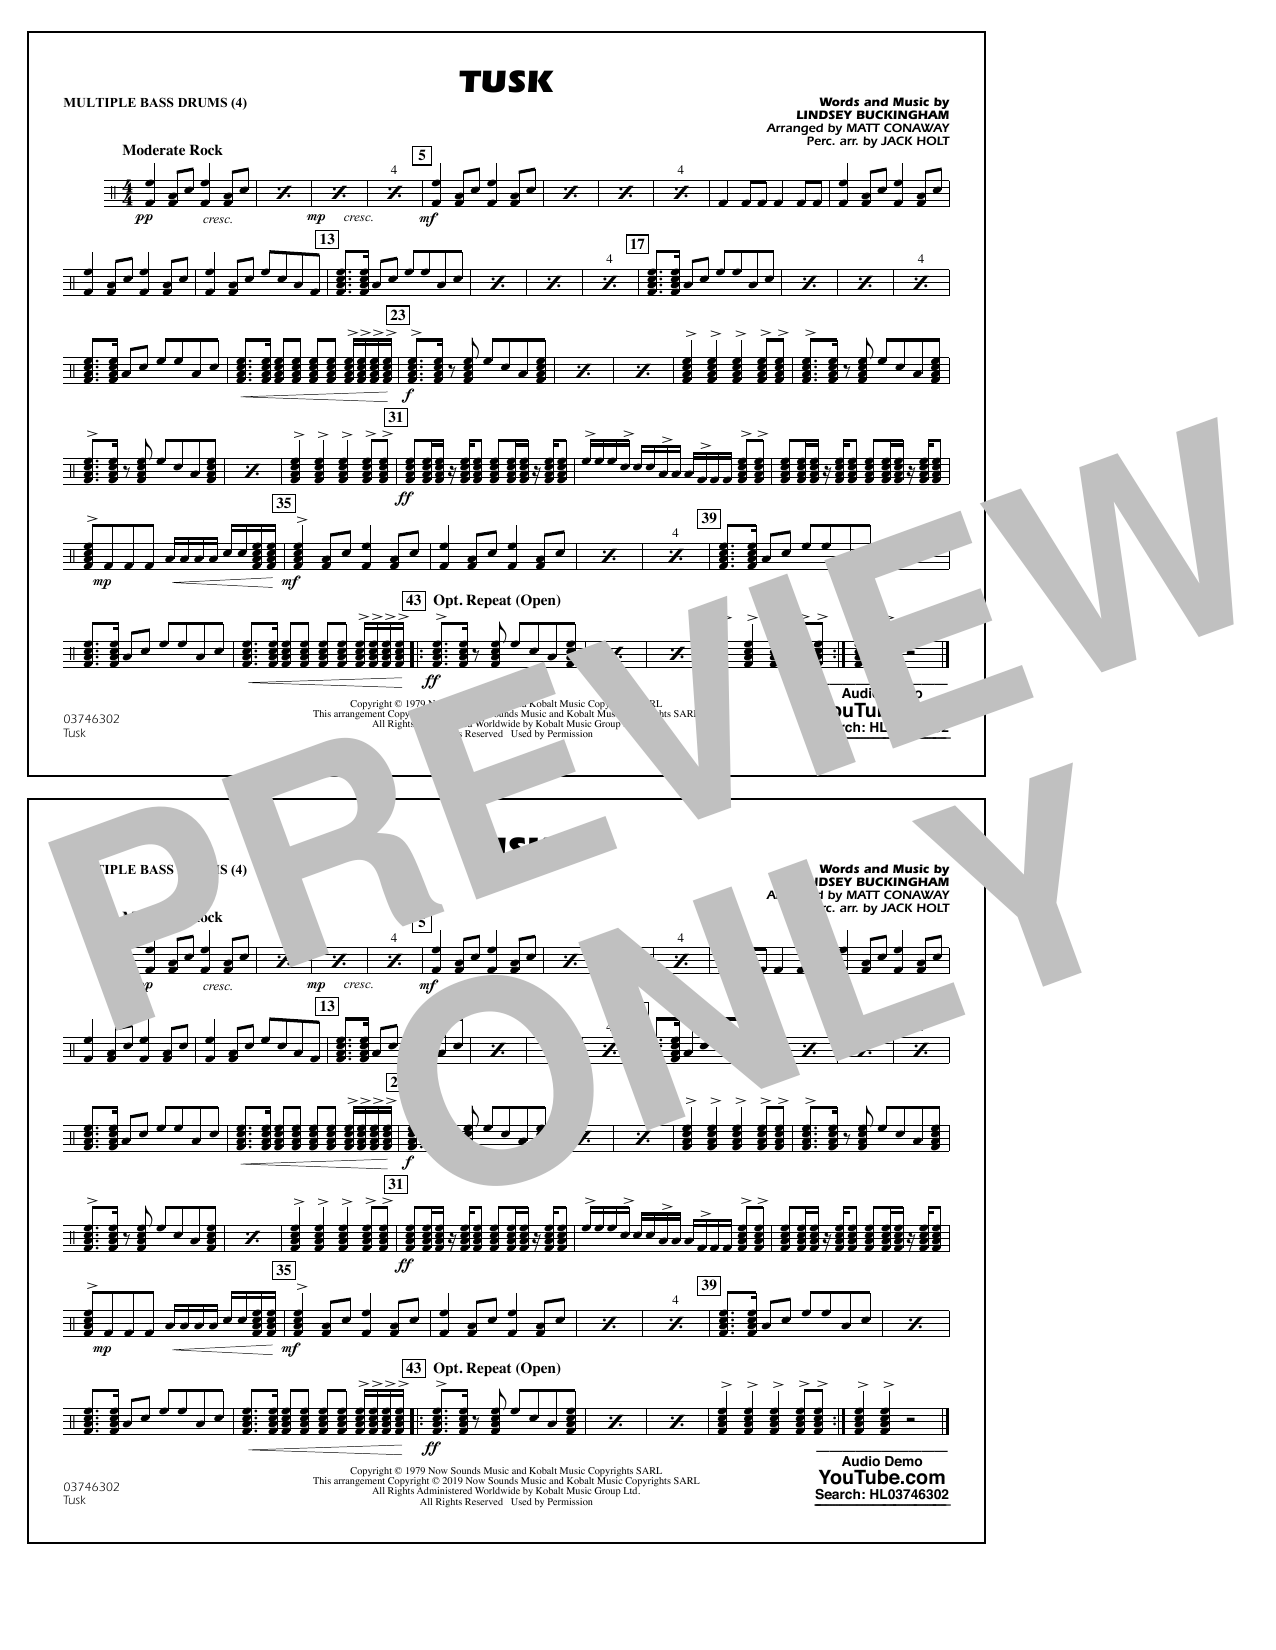 Fleetwood Mac Tusk (arr. Matt Conaway) - Multiple Bass Drums sheet music notes and chords. Download Printable PDF.